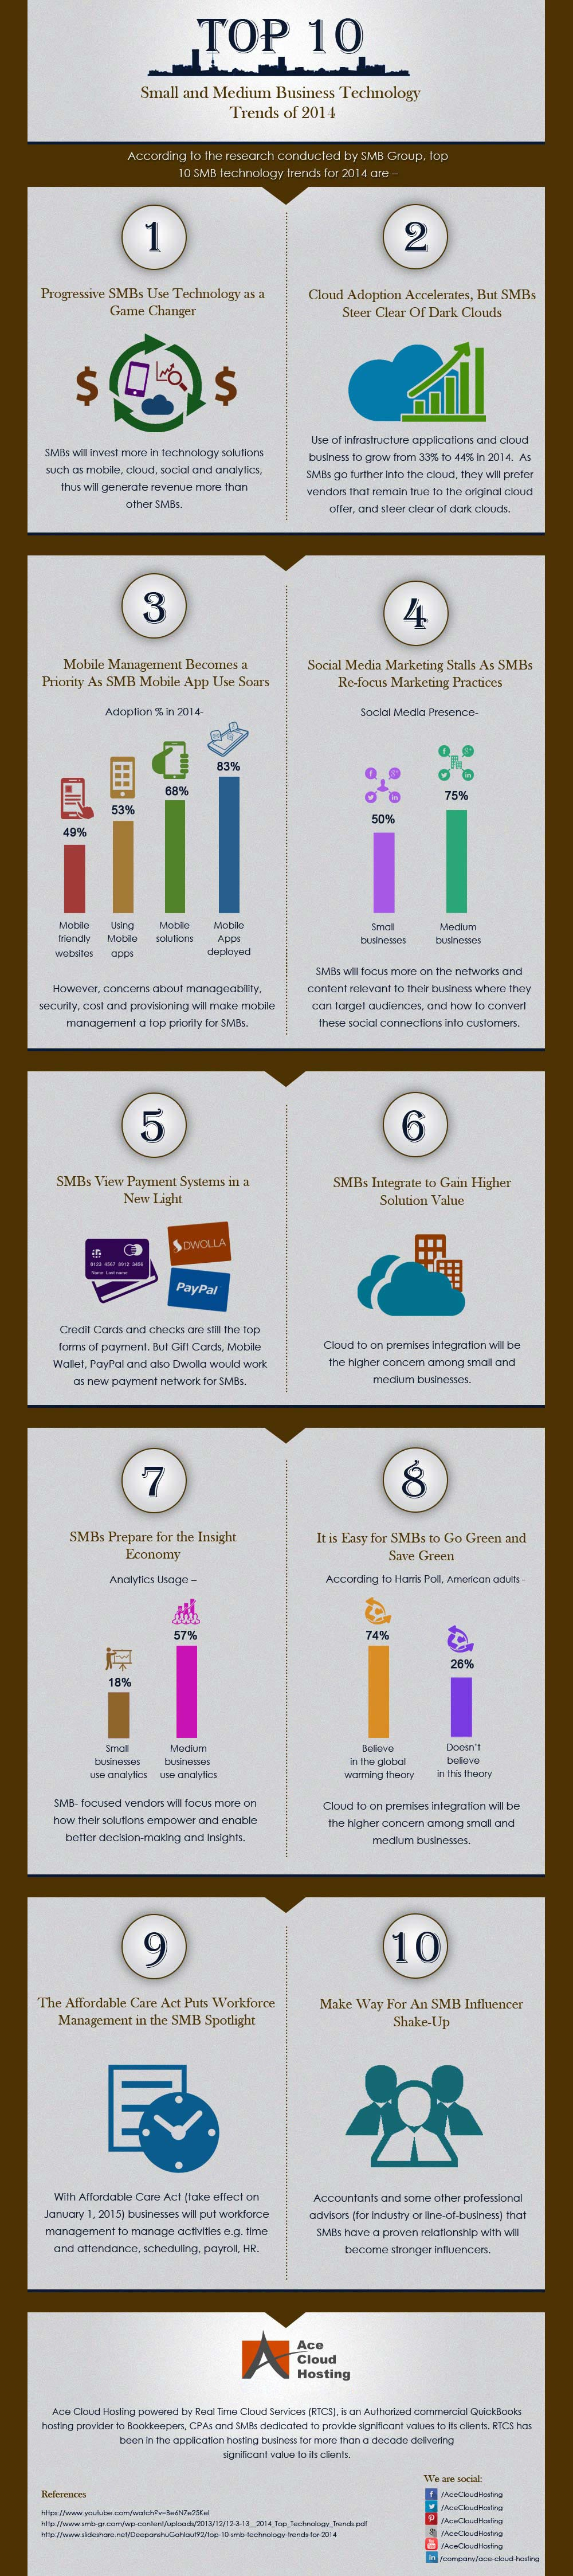 Top 10 Small and Medium Business Technology Trends of 2014